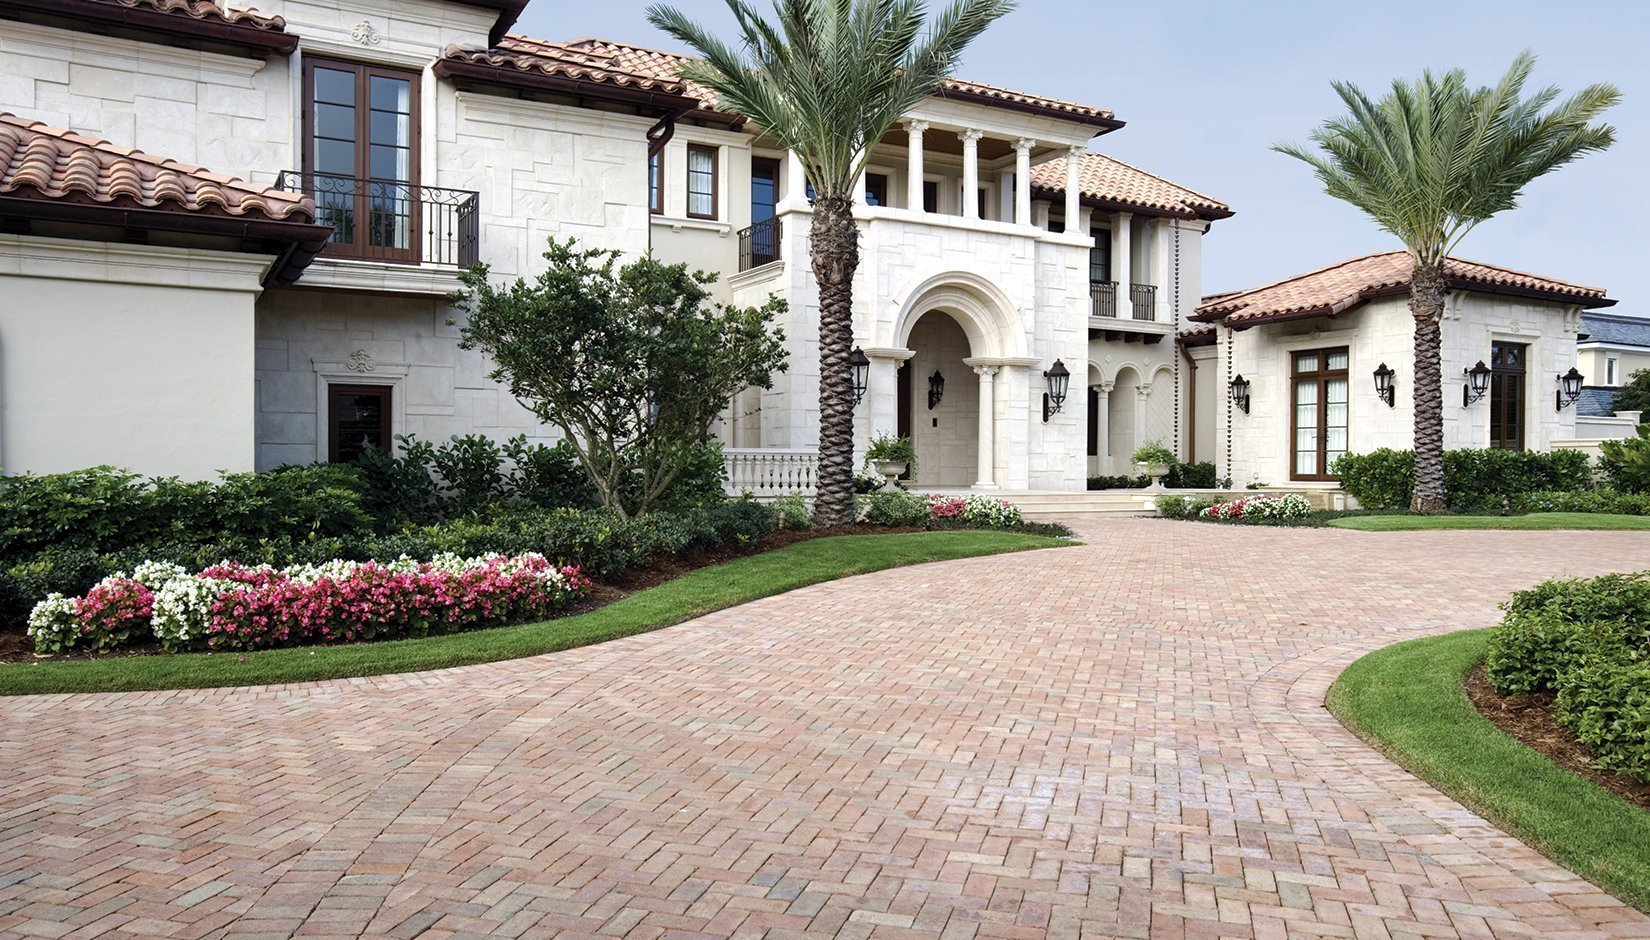 White House Red Roof Pacific Interlock Pavingstone